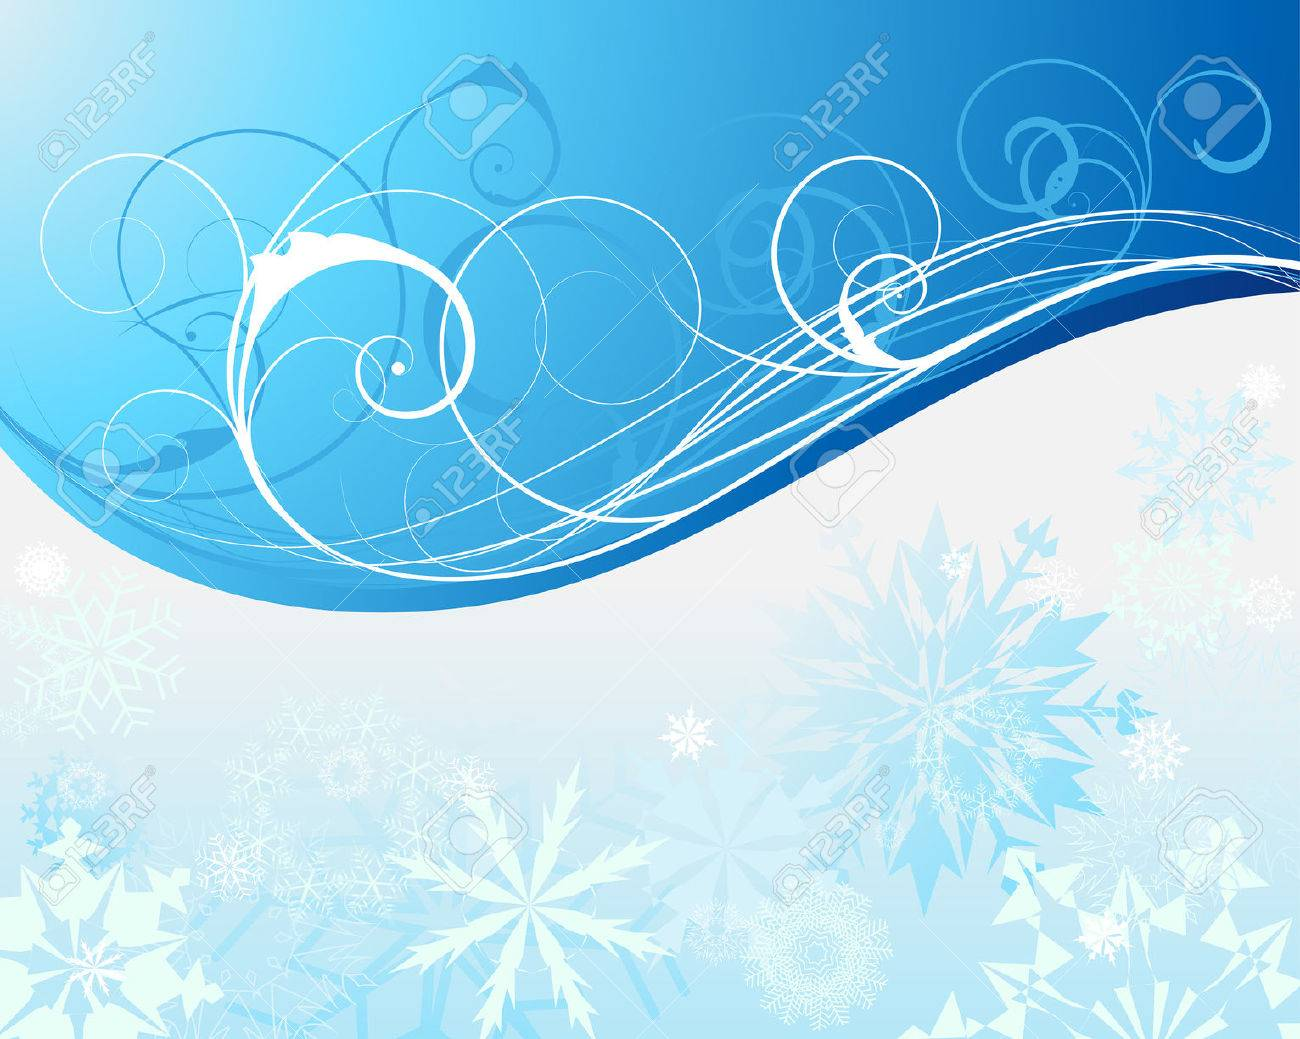 Beautiful vector christmas new year background for design use - Beautiful Vector Christmas New Year Background For Design Use Stock Vector 5680545